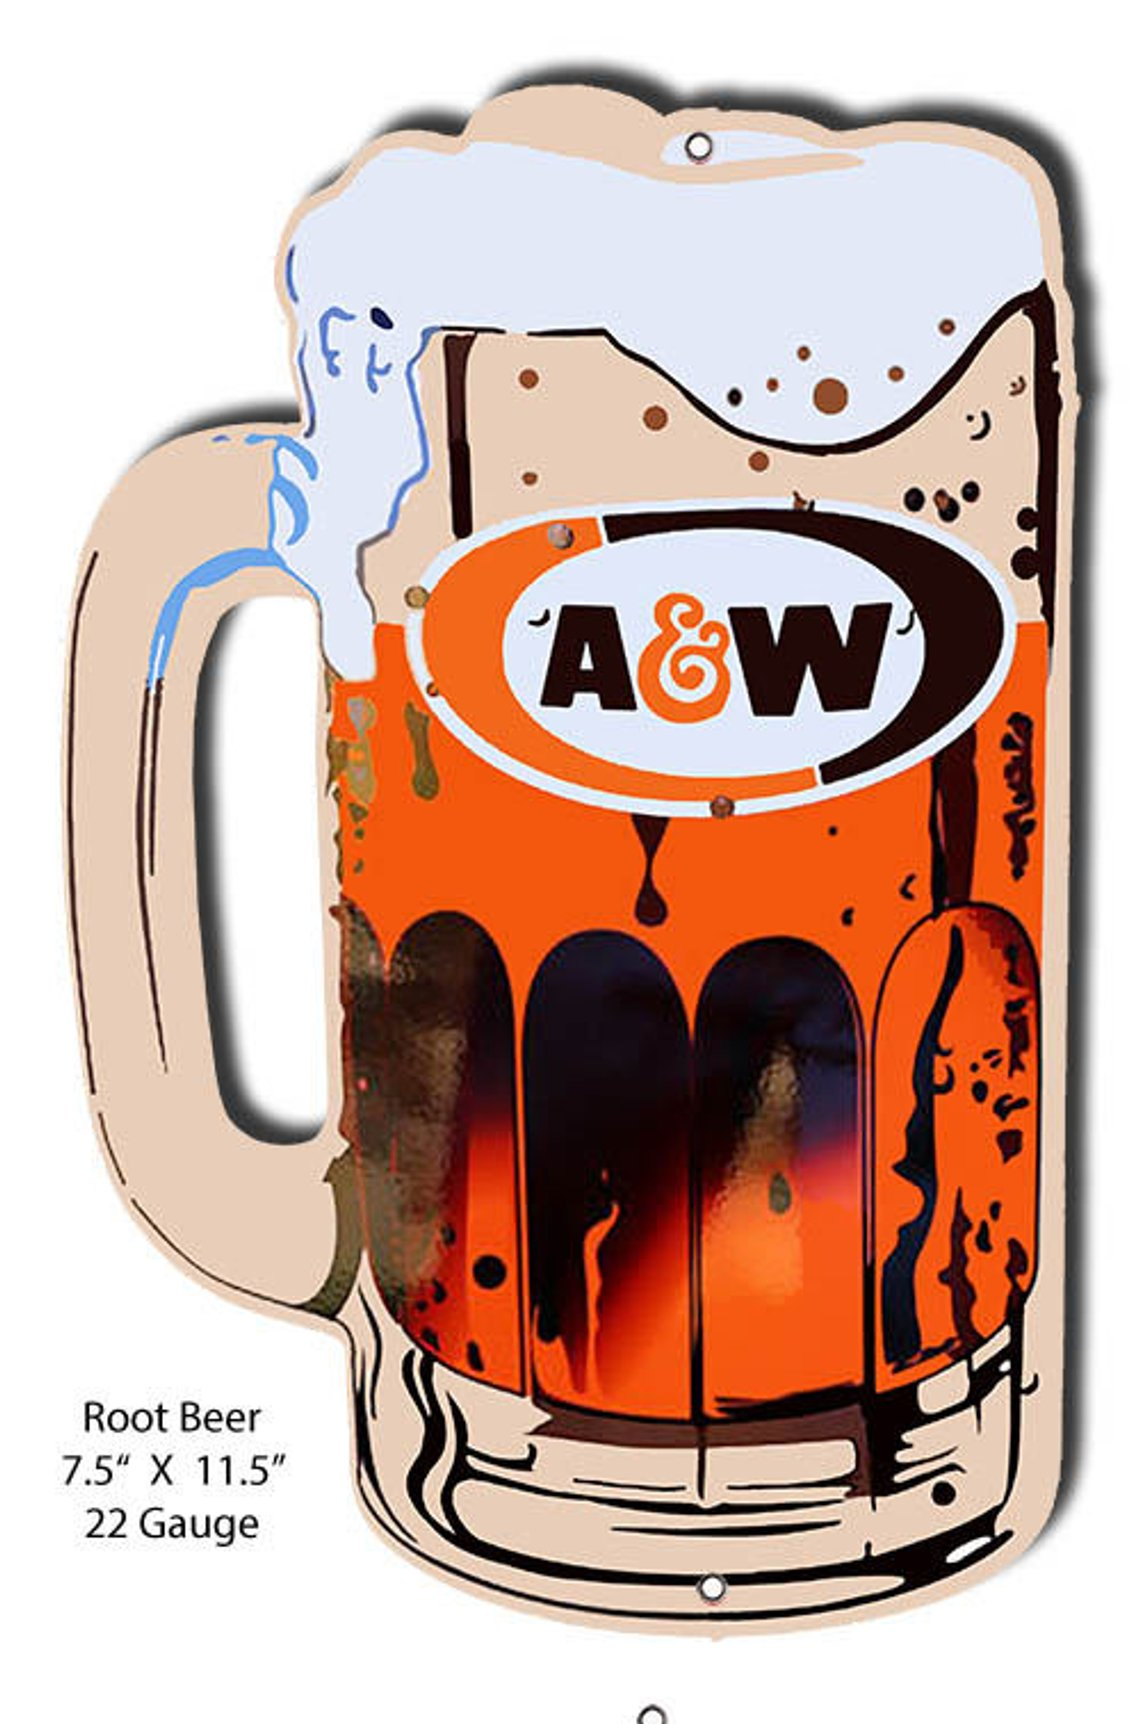 Laser Cut Out Sign of A&W Root Beer Mug